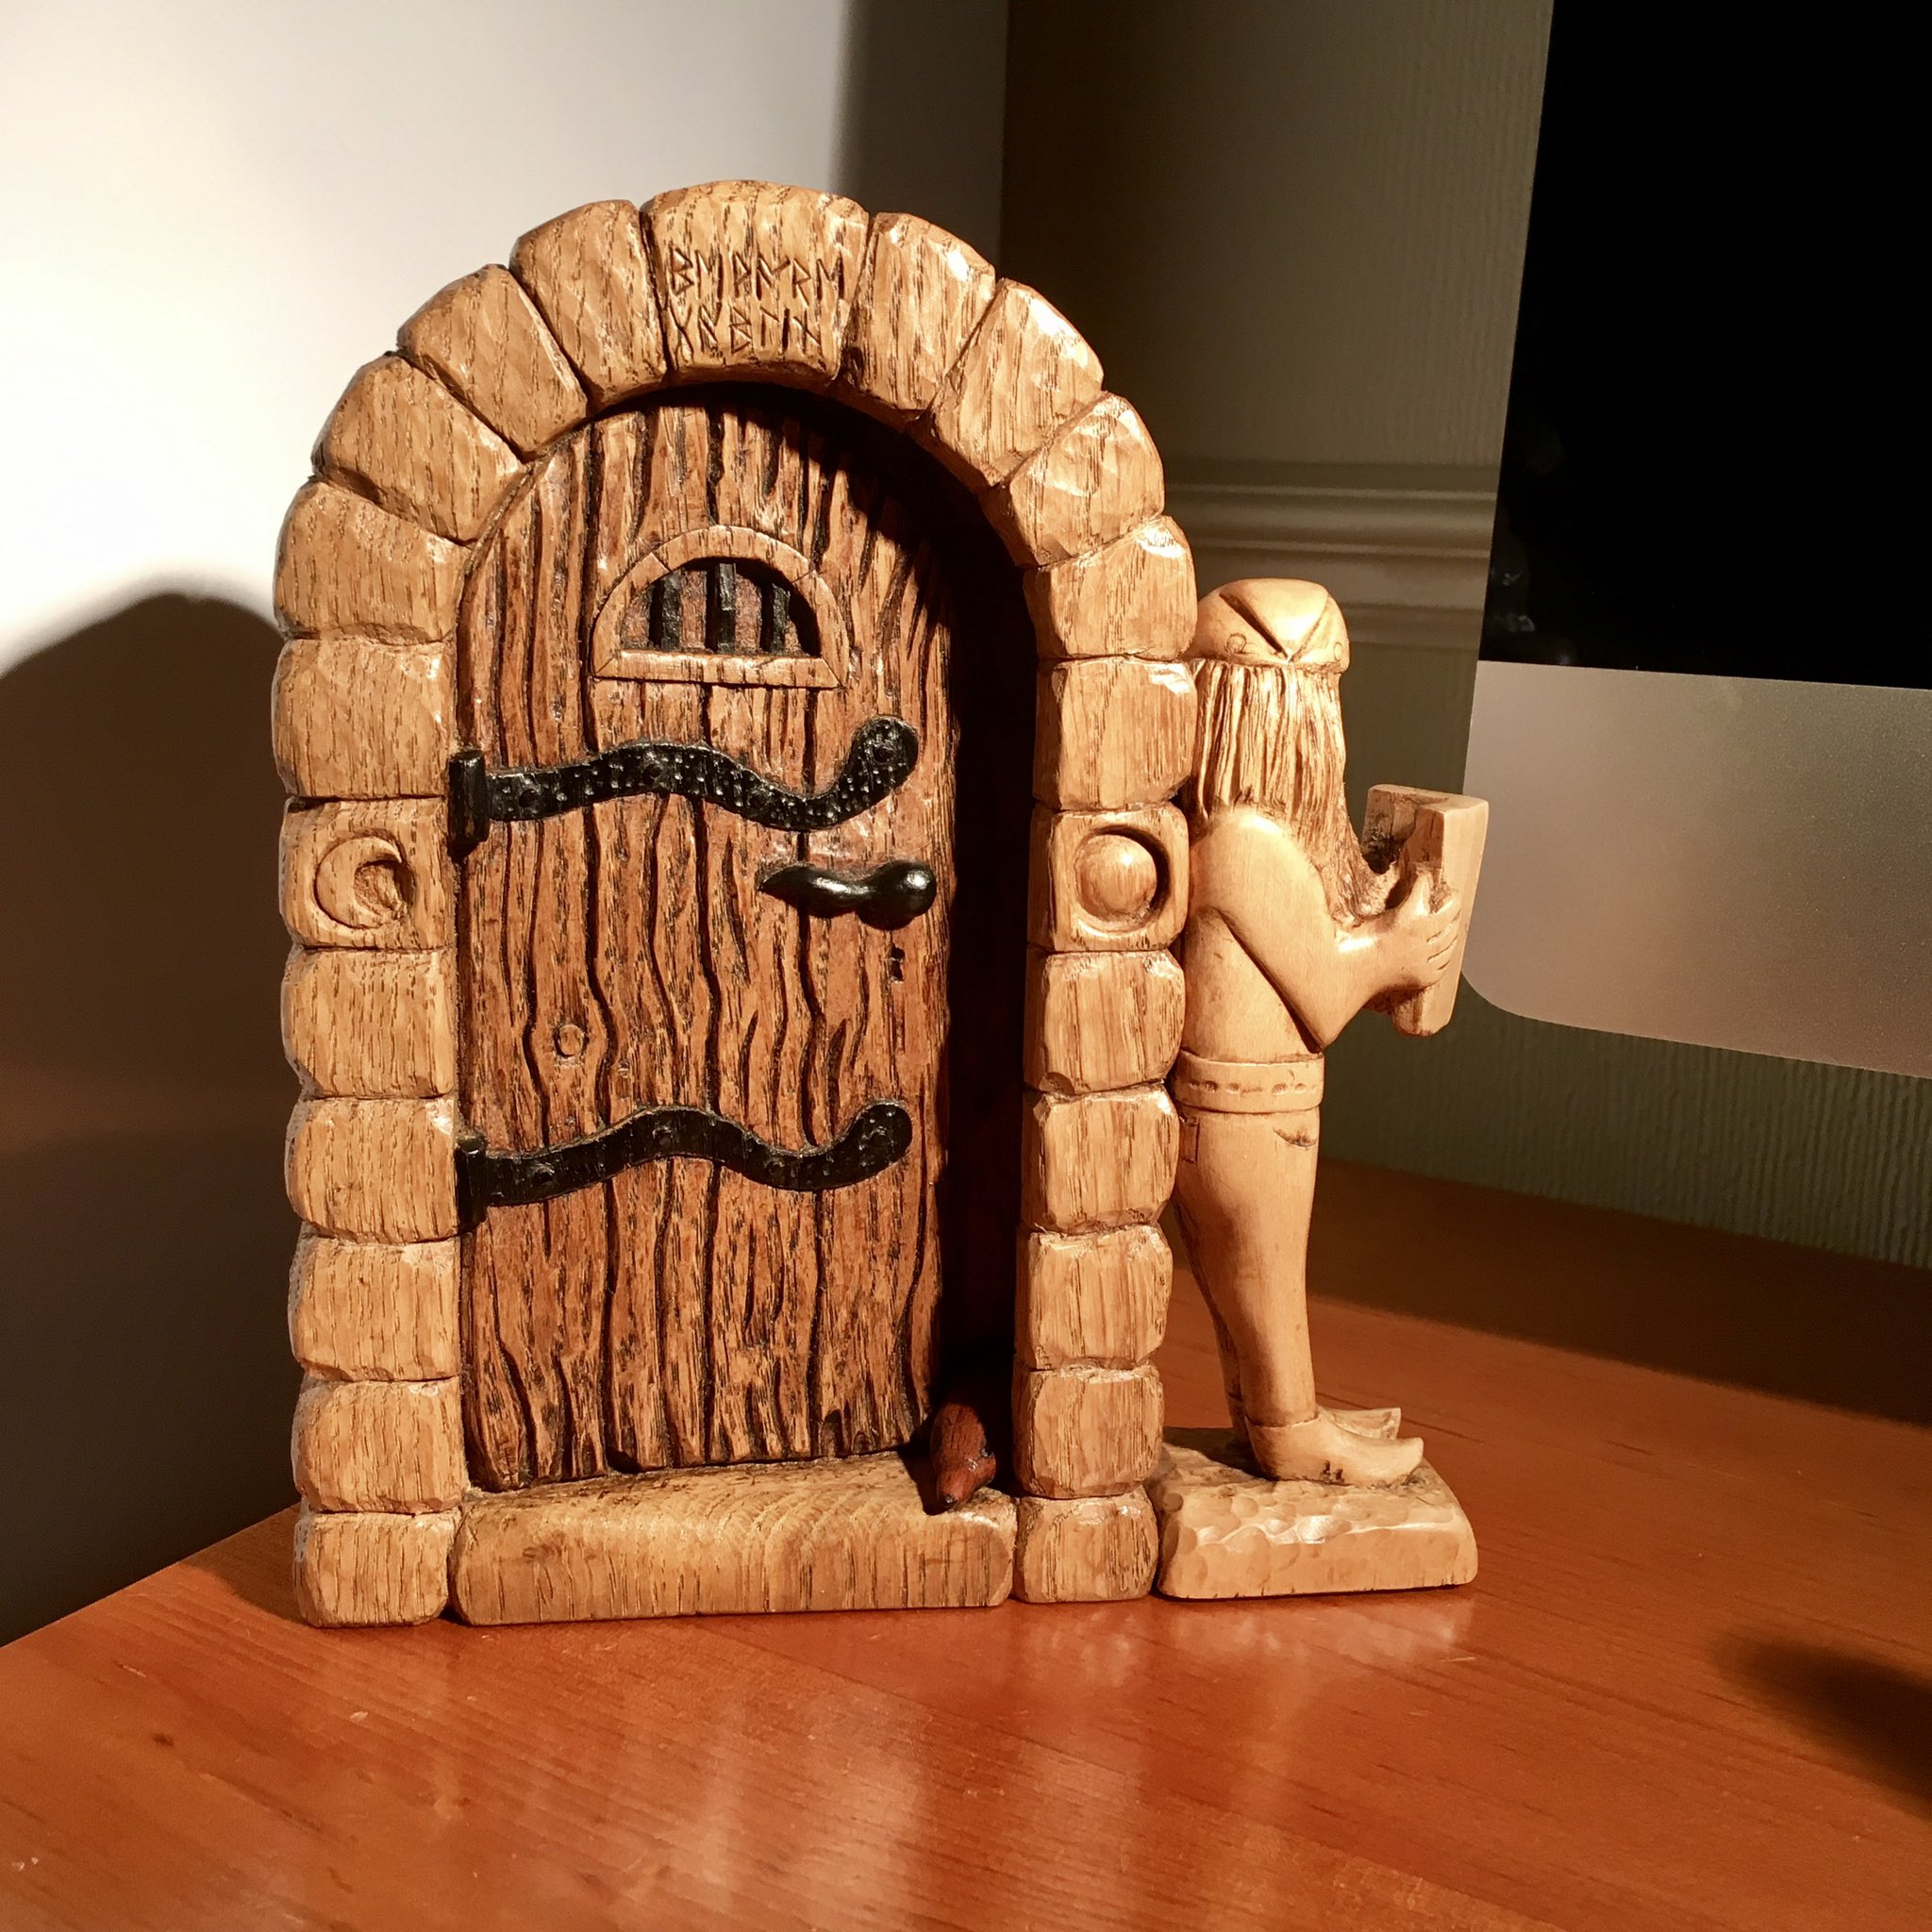 Carving from 2016 not forgetting the guard shrew at the door beware https://t.co/IjlPRW7bPP